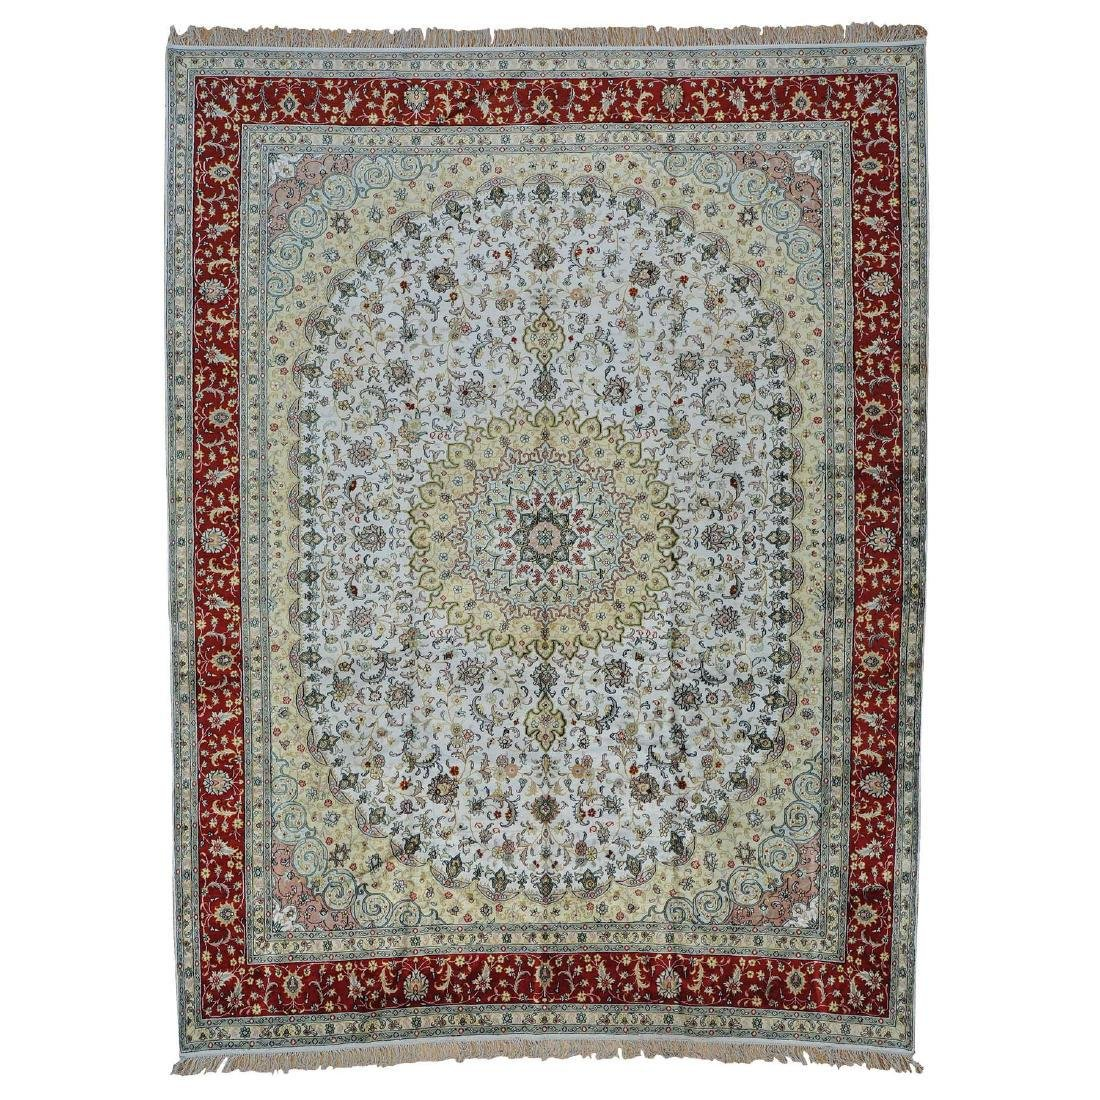 Medallion Design Silk Kashan Hand Knotted Rug 9.10x13.6